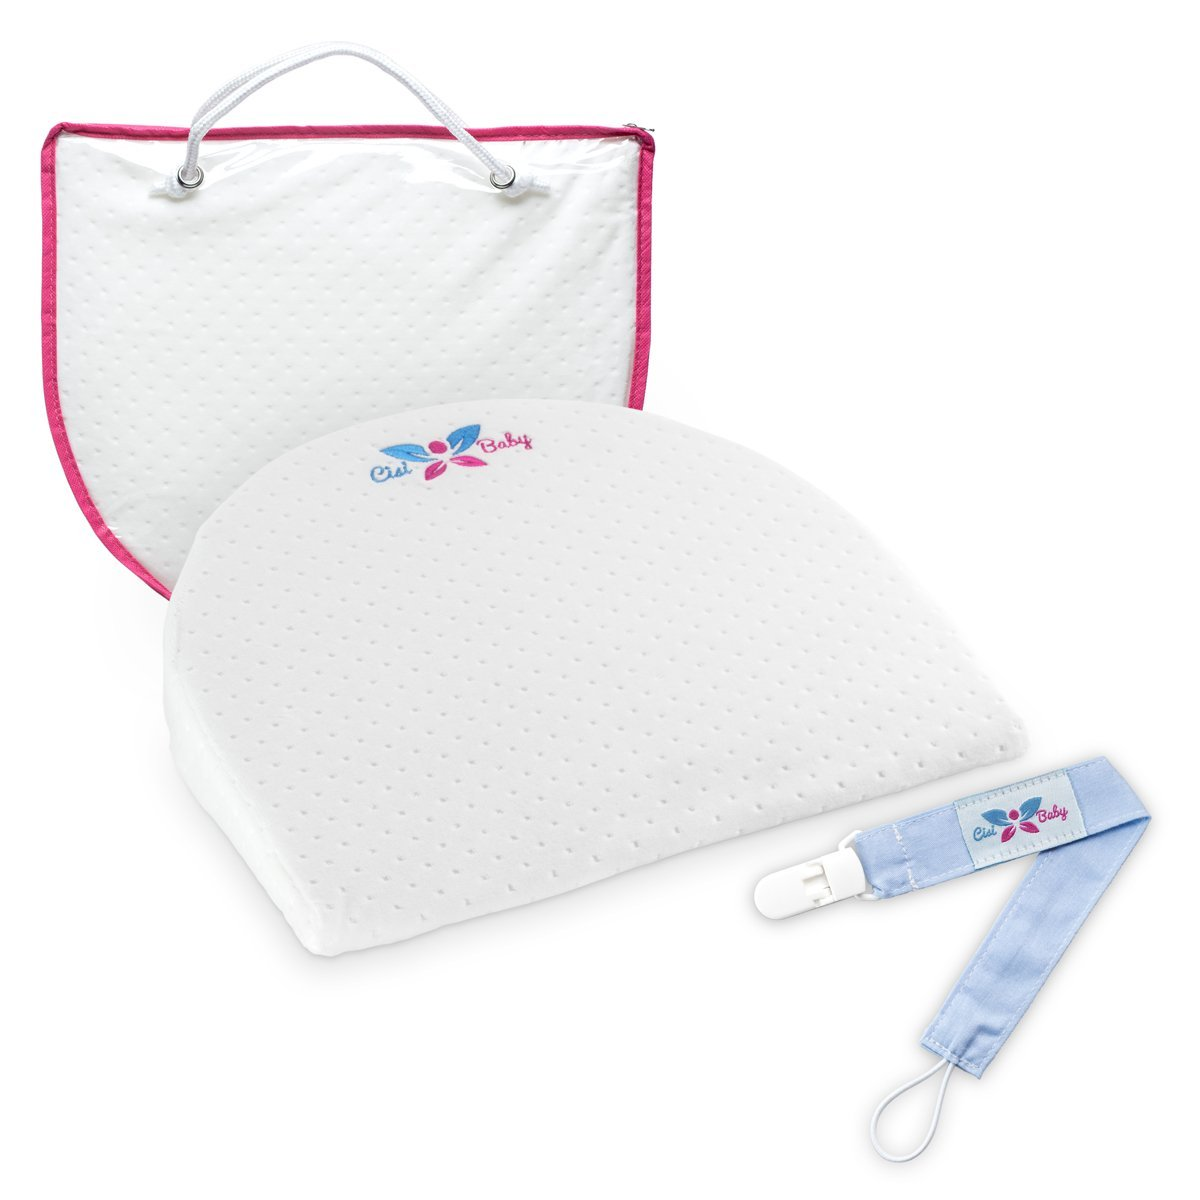 Newborn Bassinet Reflux Buy Bassinet Wedge For Baby Reflux Baby Wedge Infant